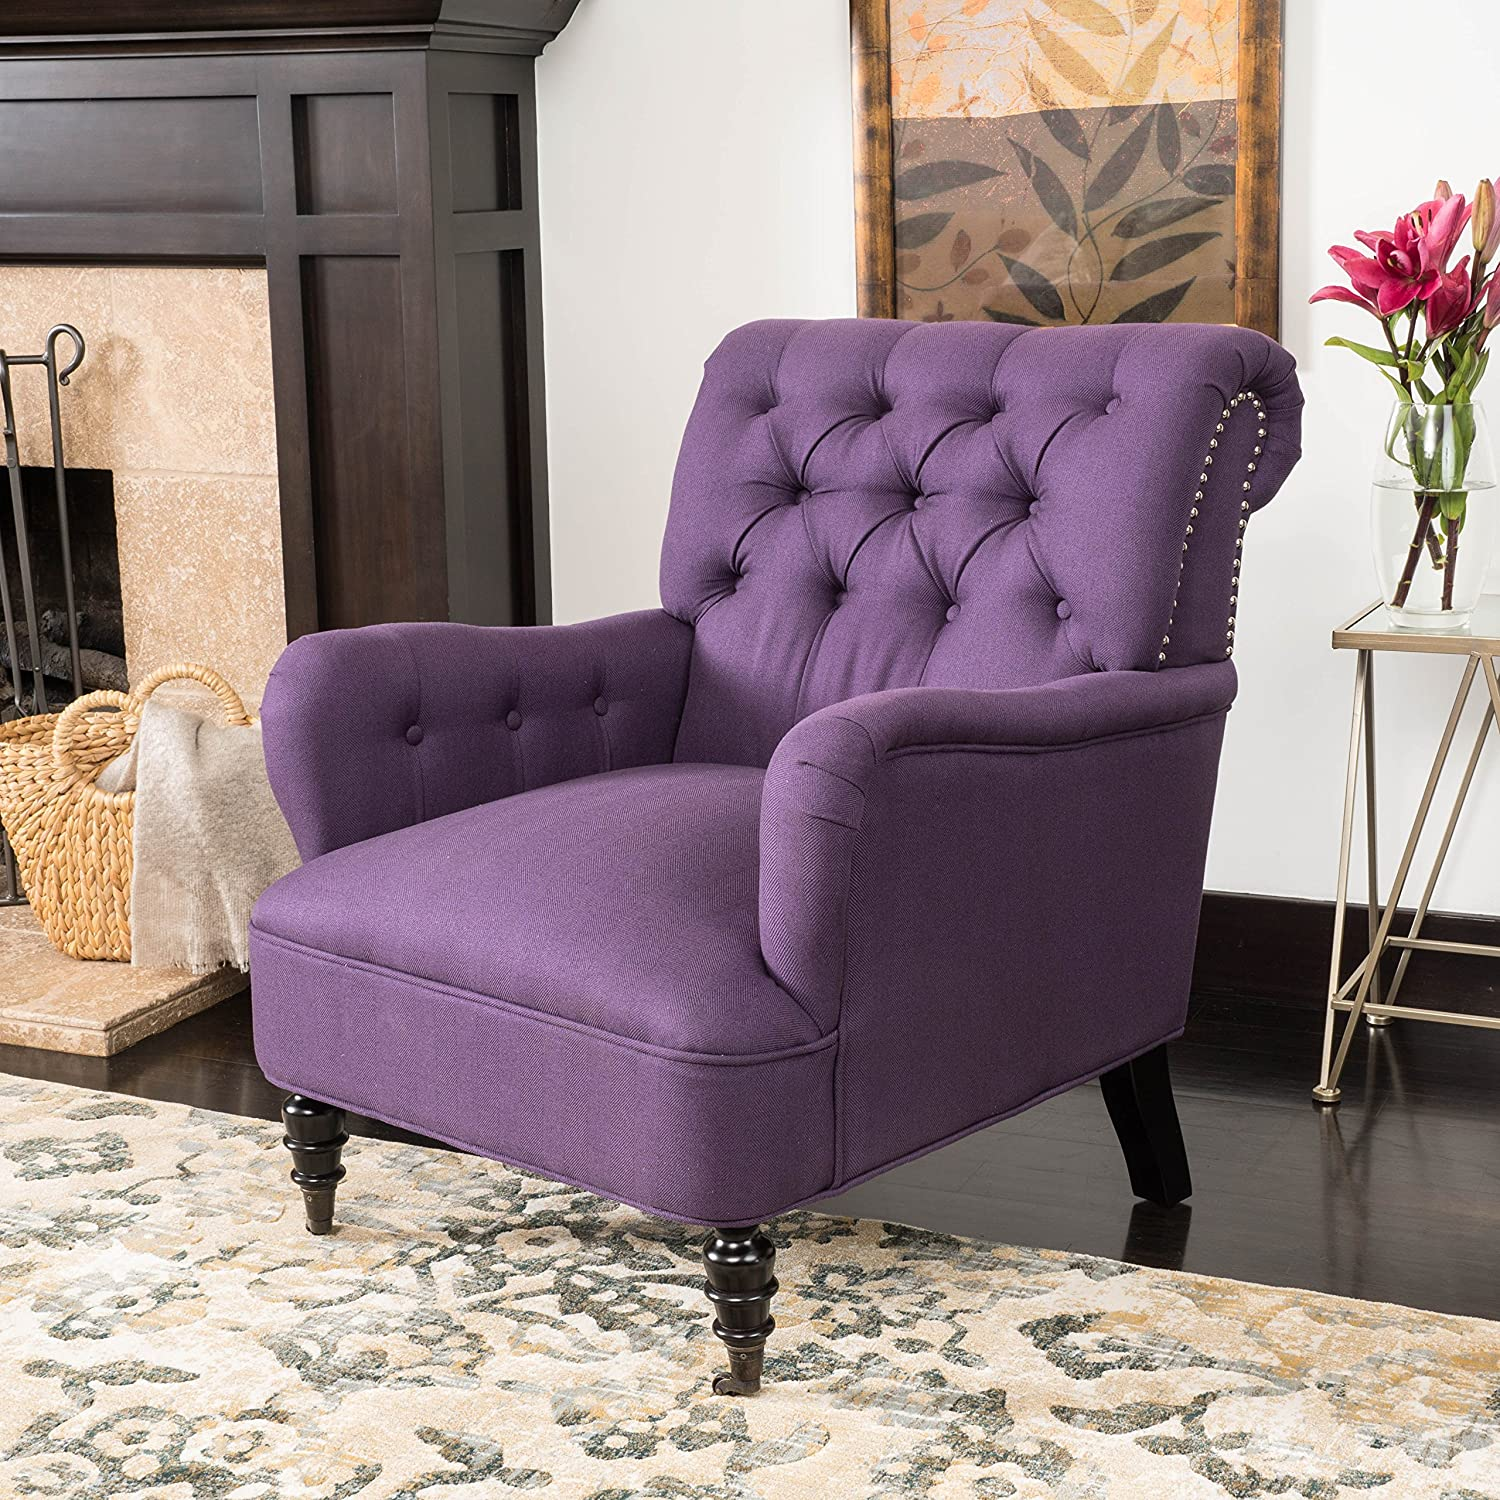 Amazon Renate Haven Linen Tufted Club Chair w Nail head